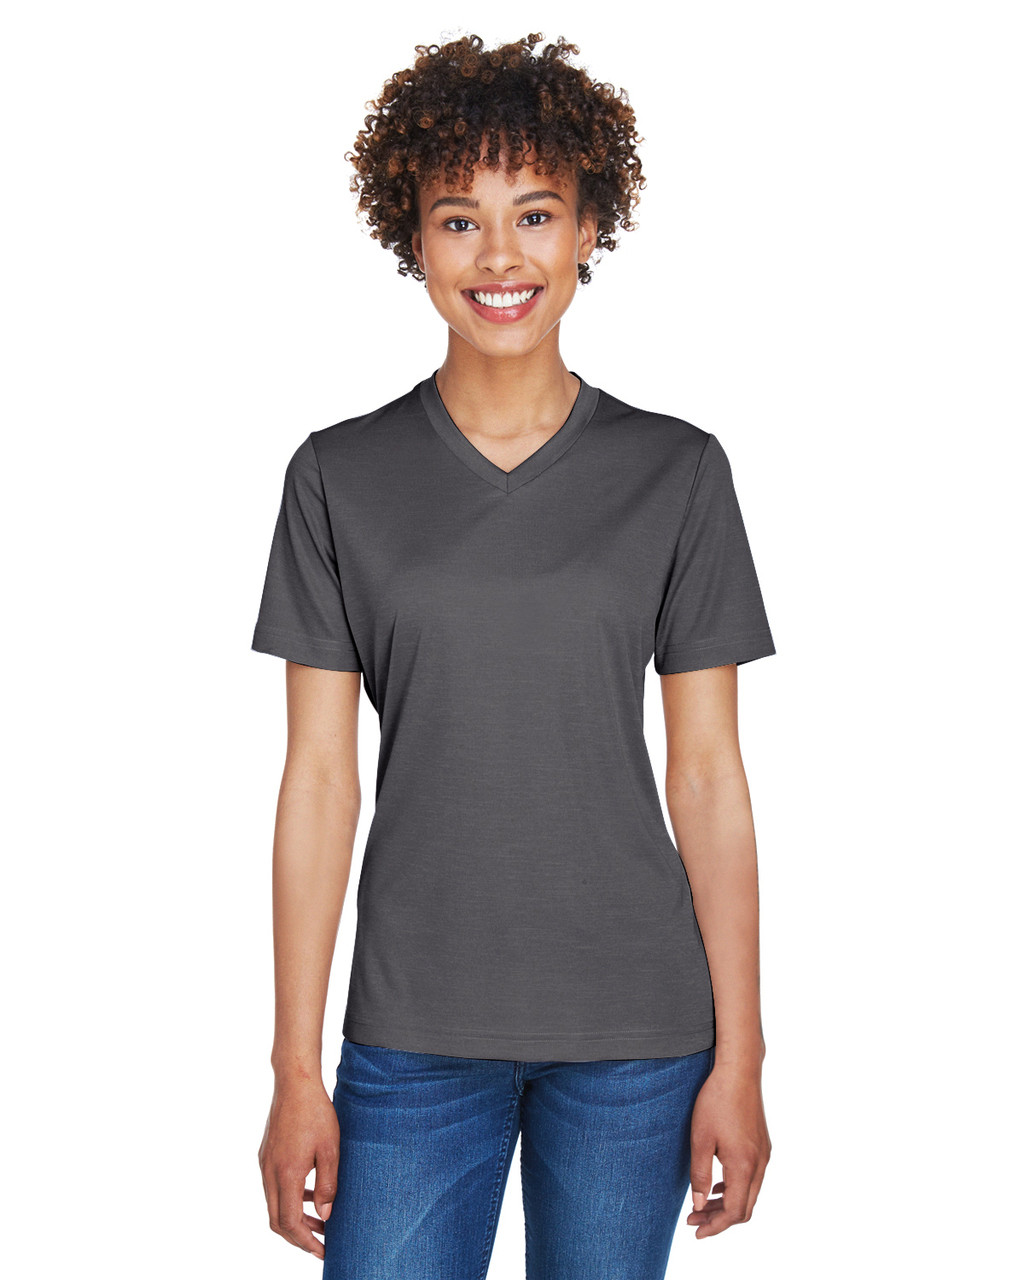 Dark Grey Heather - TT11HW Team 365 Ladies' Sonic Heather Performance T-Shirt | BlankClothing.ca